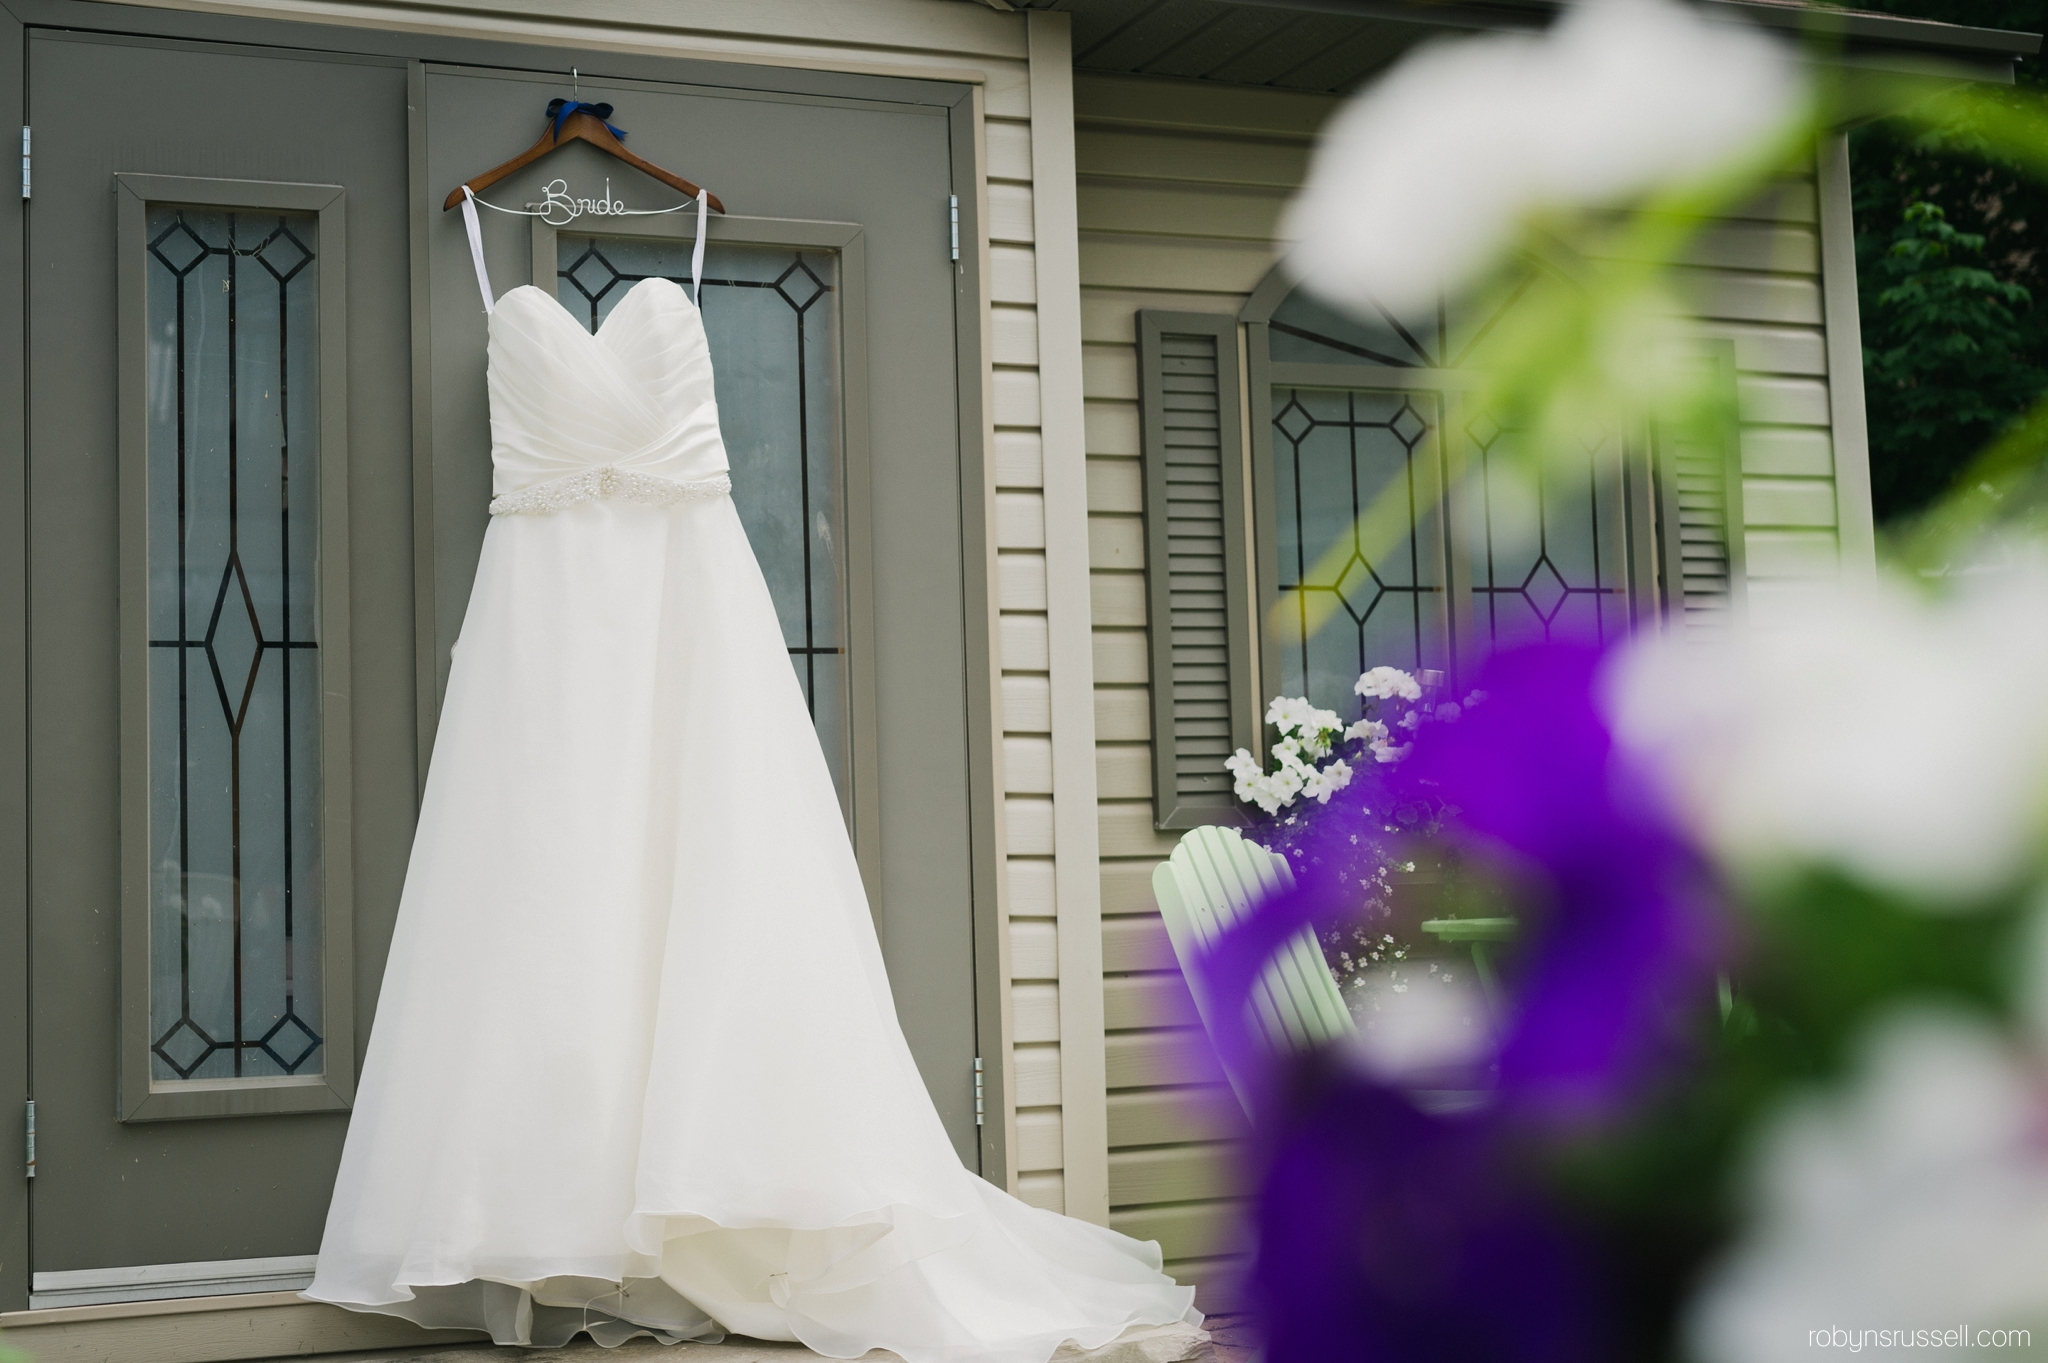 6-bridal-gown-barrie-outdoor.jpg